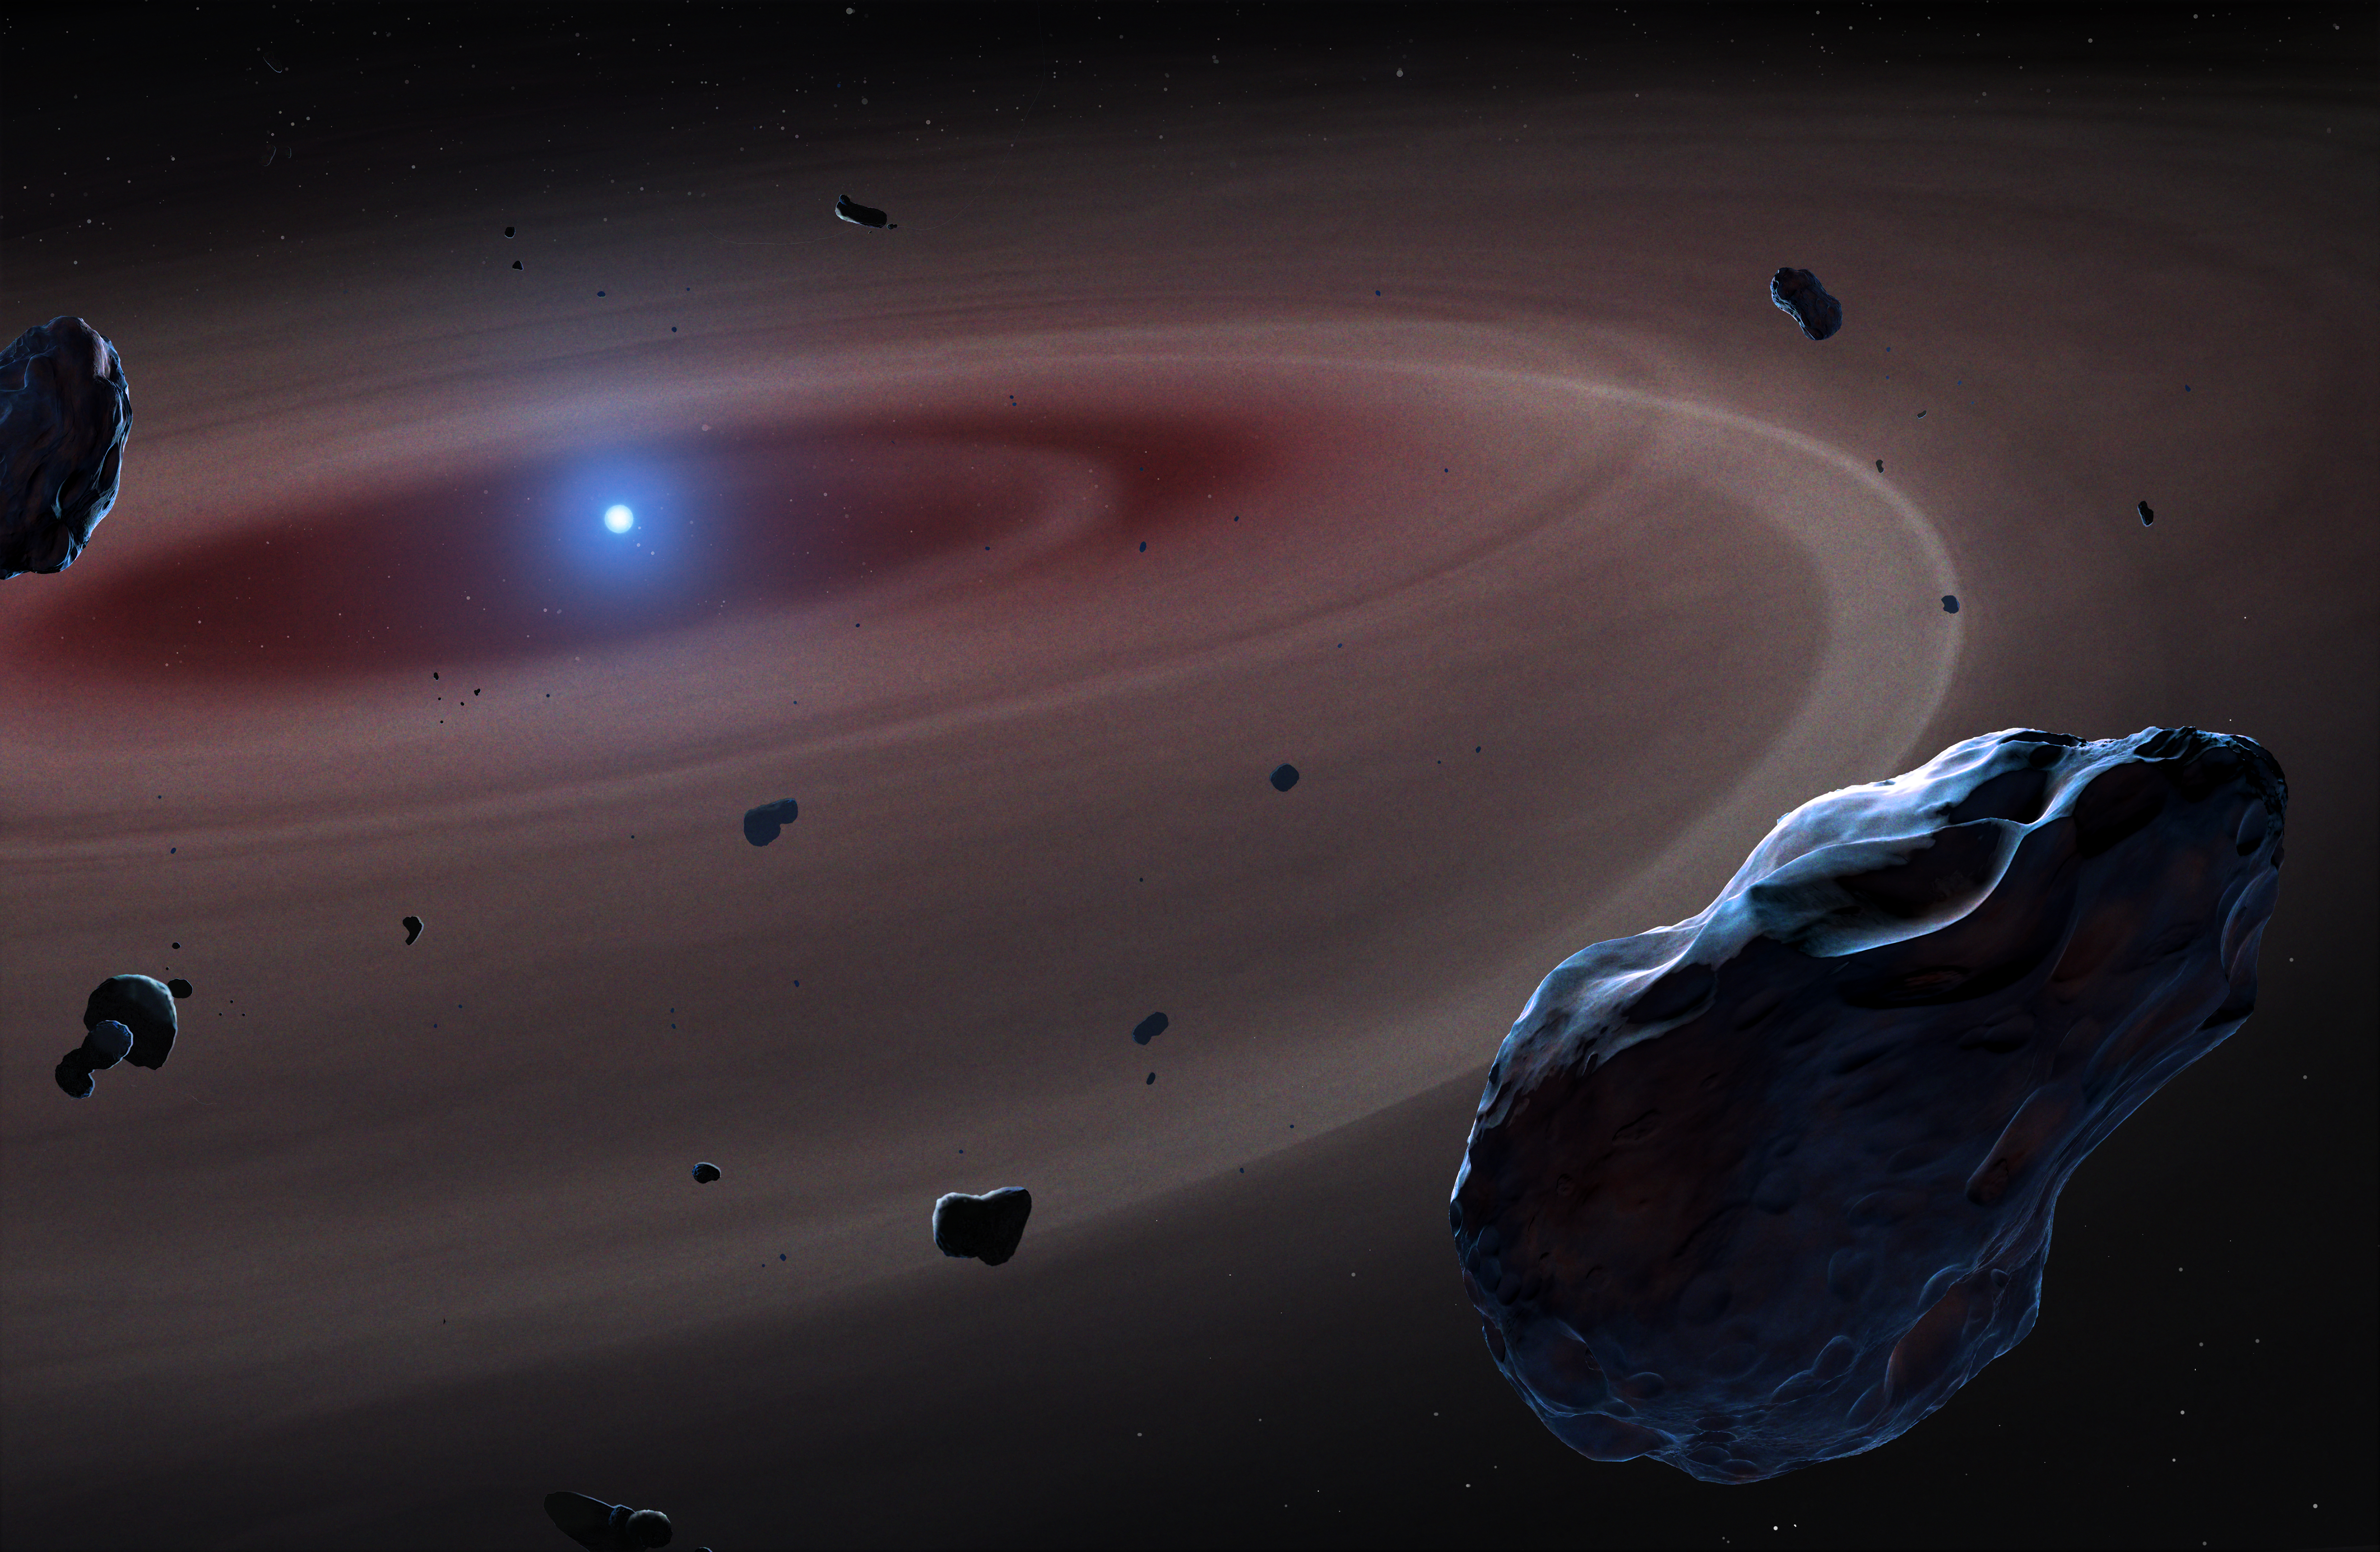 pictures of outer space in the white dwarf - photo #12